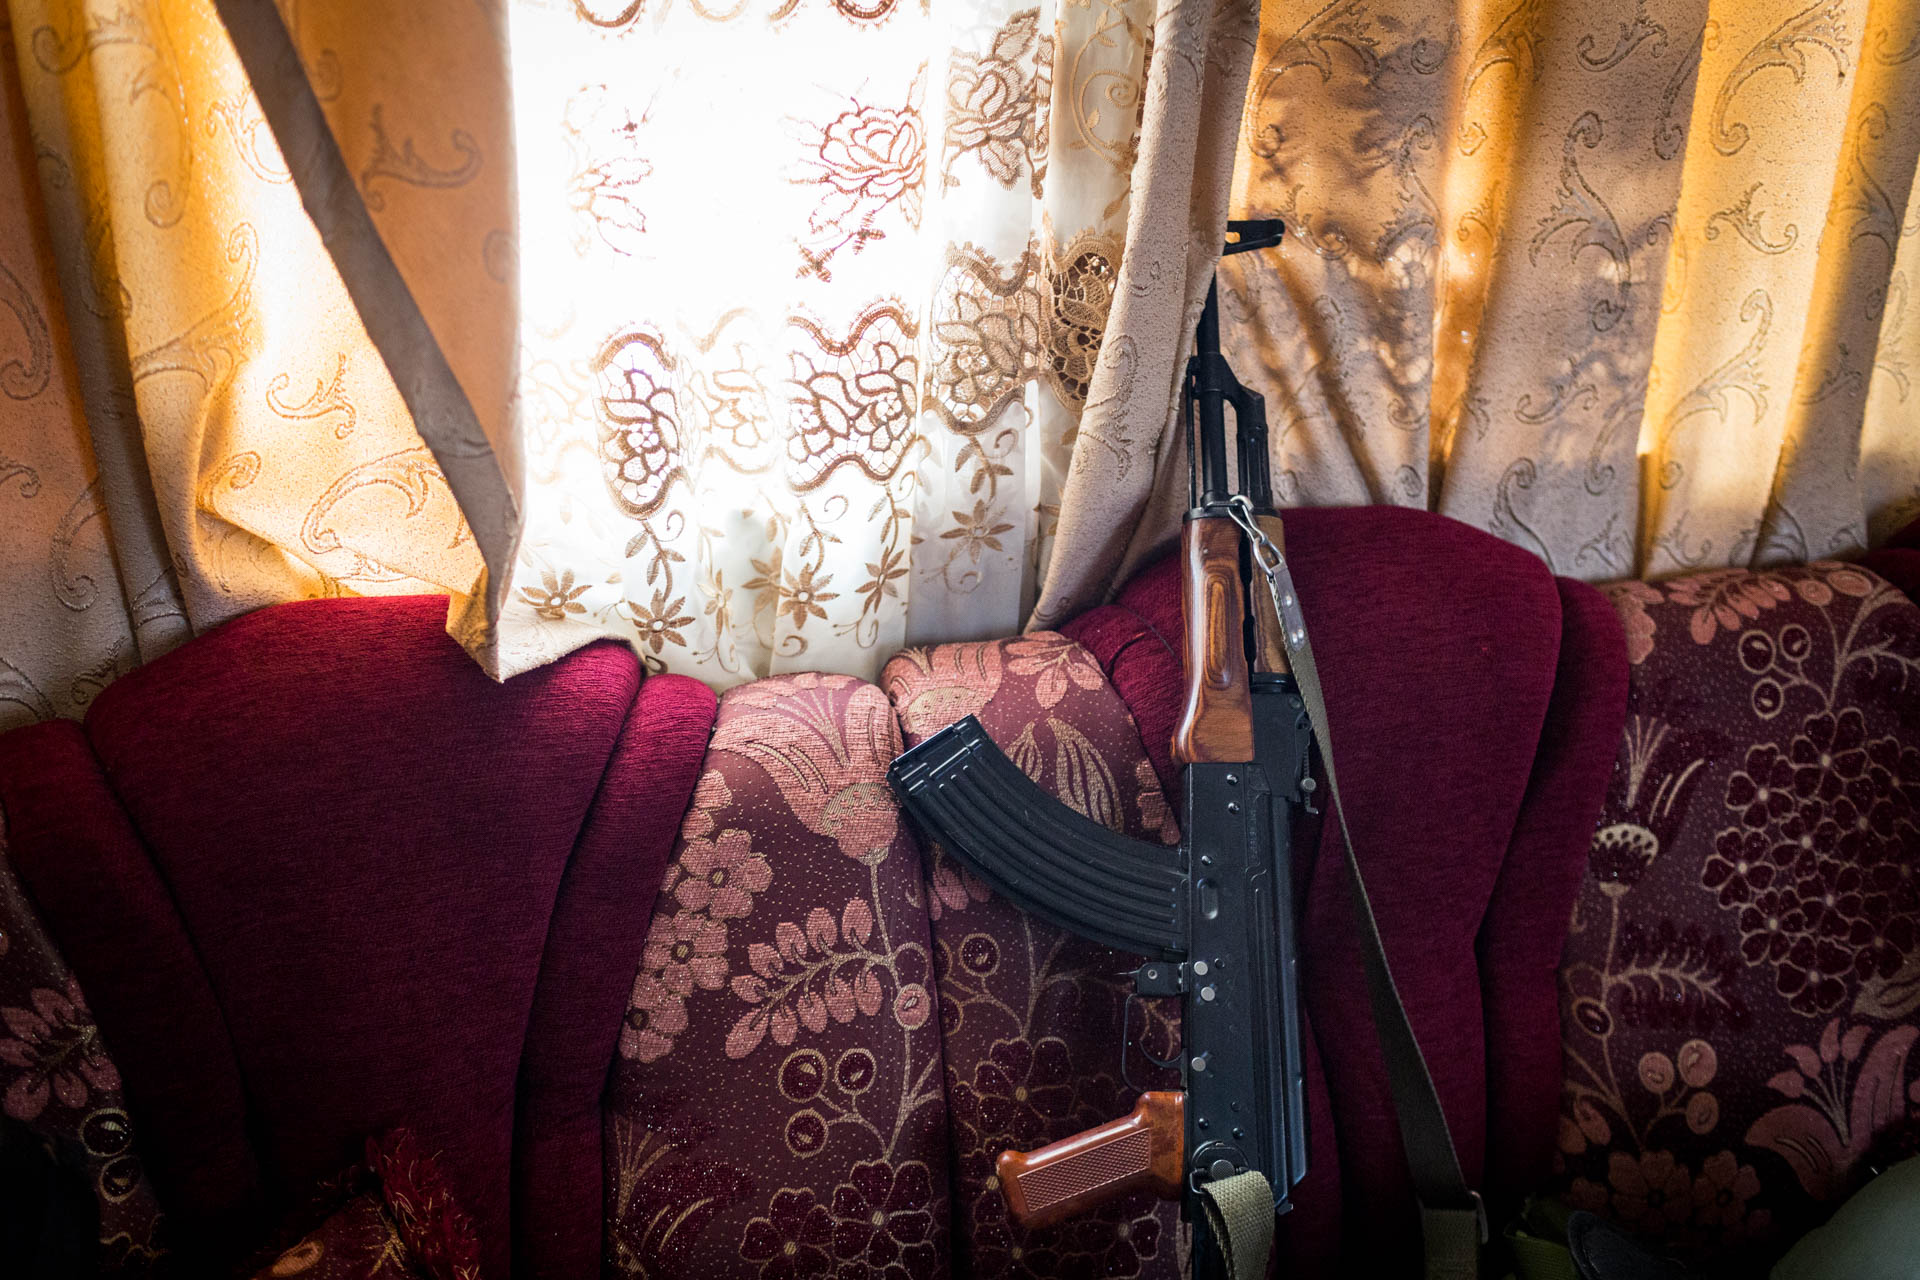 A rifle leans on a sofa in the living room.